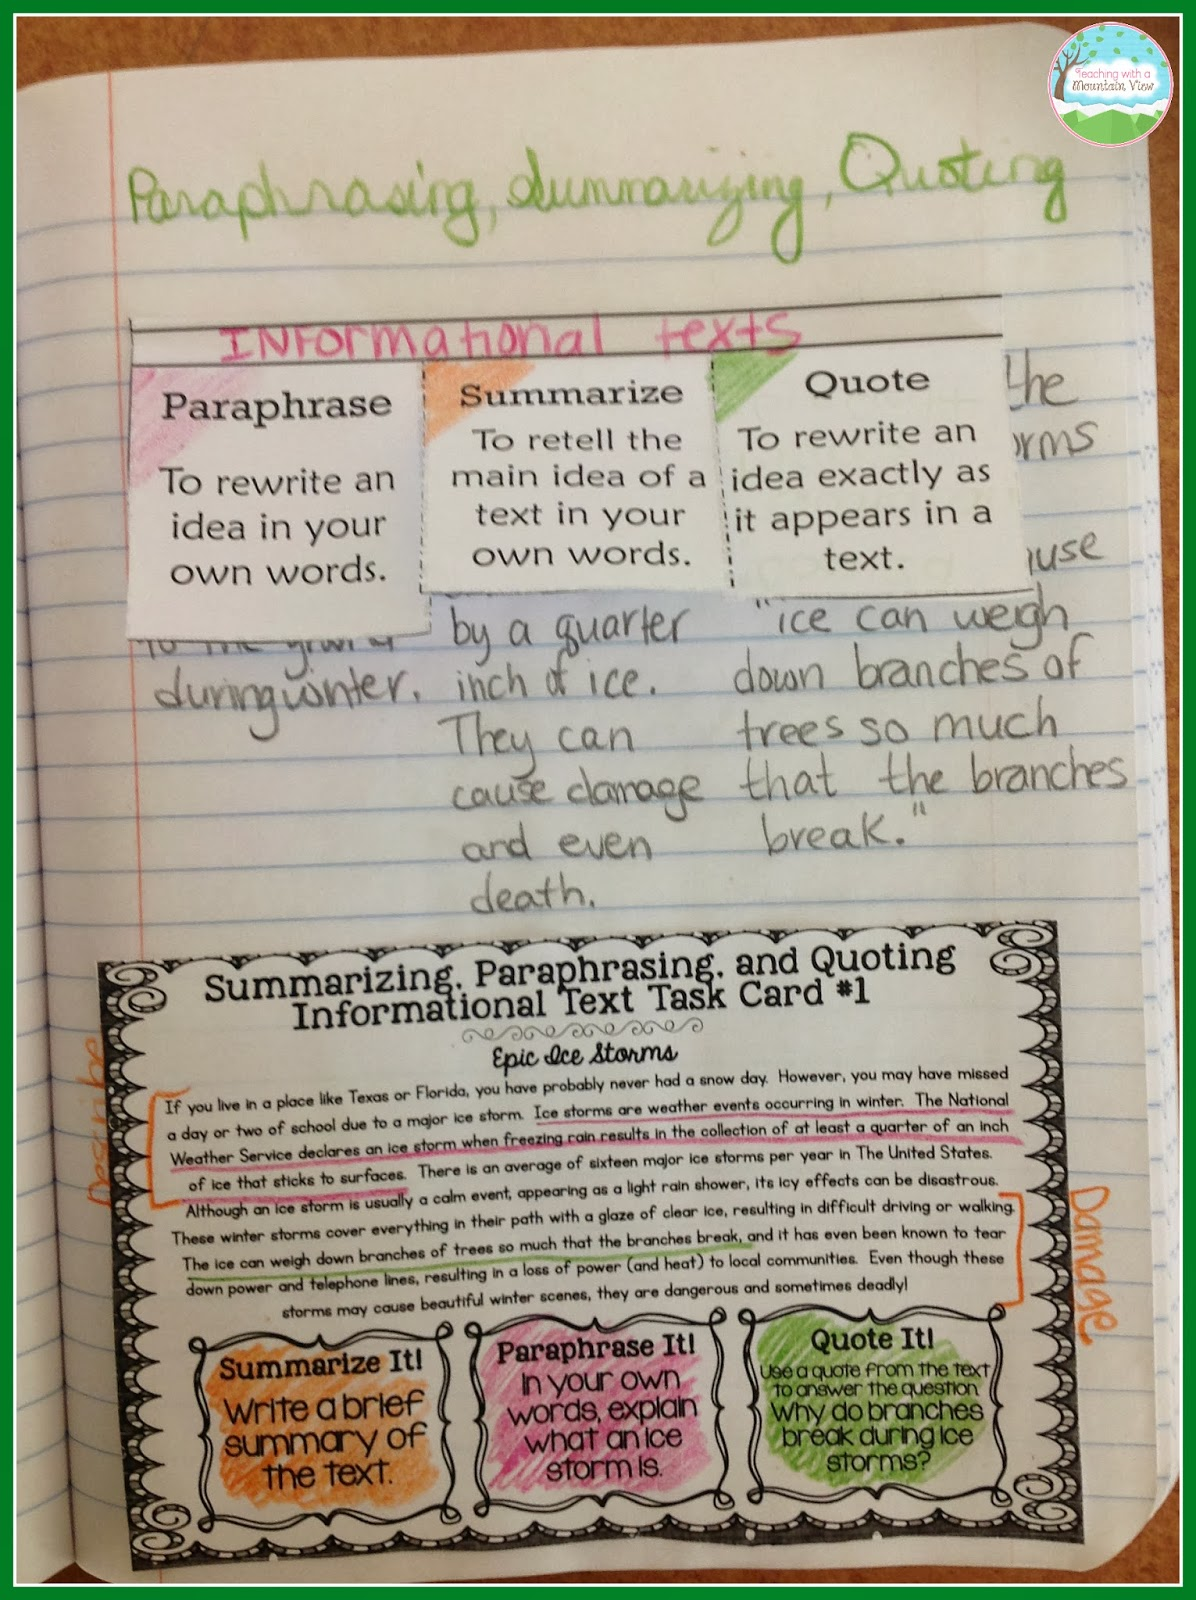 Summarizing and paraphrasing worksheets differences